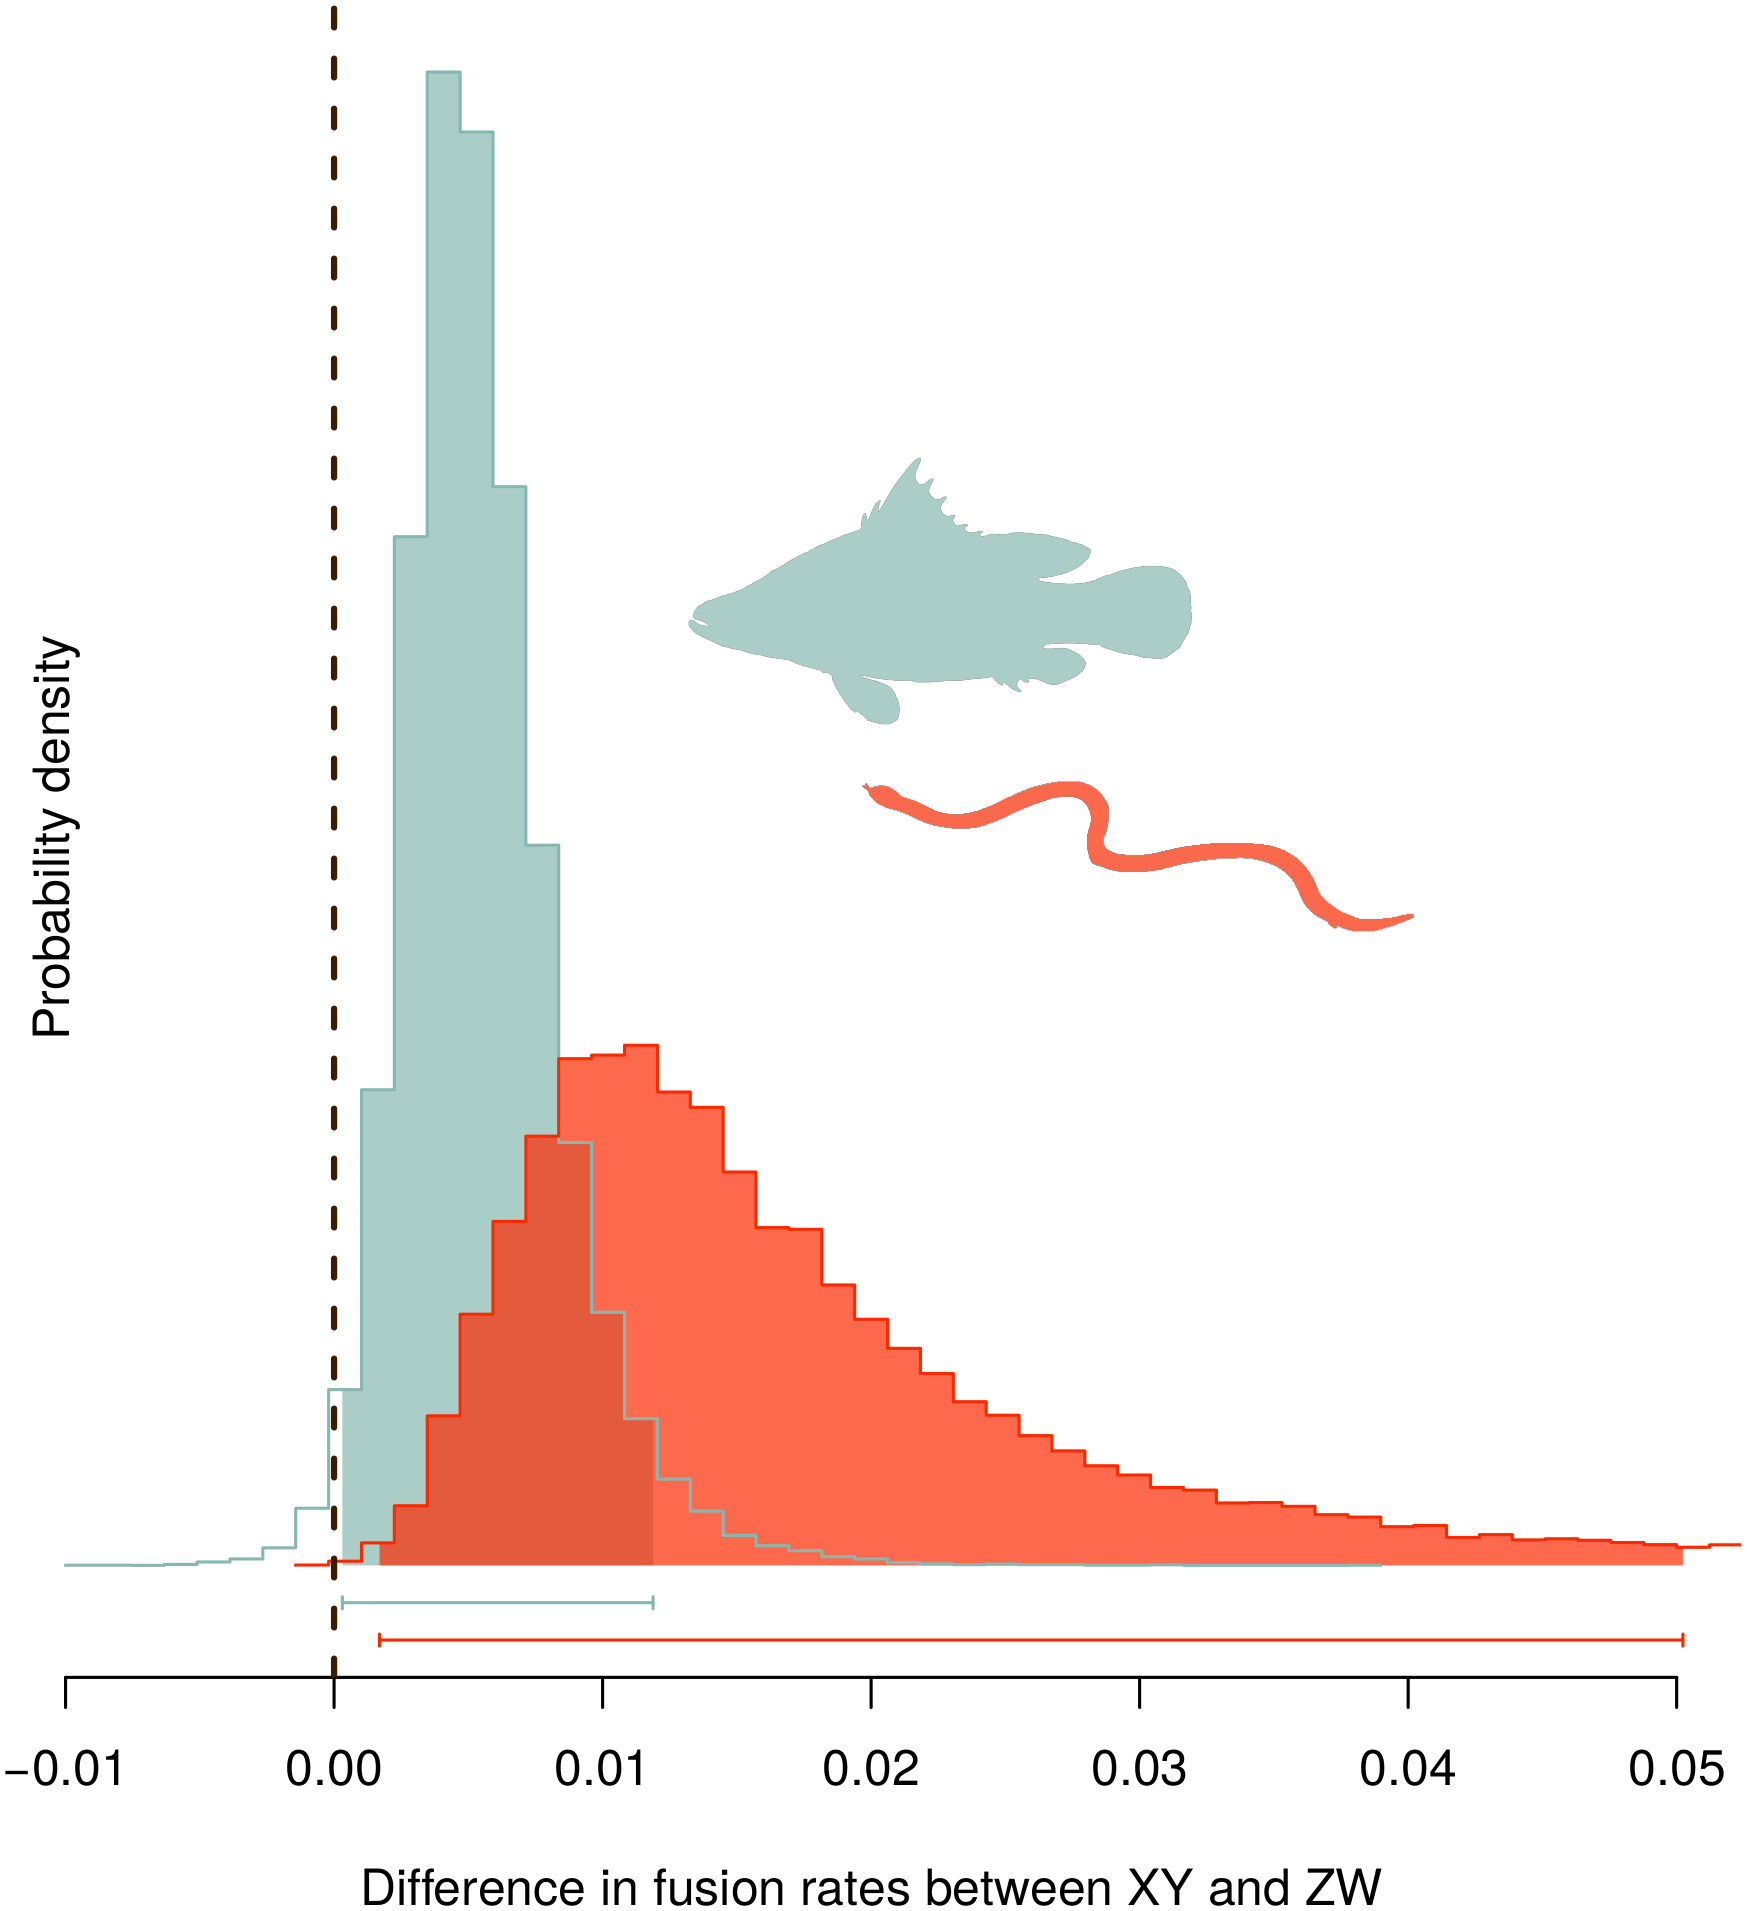 Posterior probability density of the difference in fixation rates of fusions between autosomes and sex chromosomes (rates in XY species minus in ZW species).